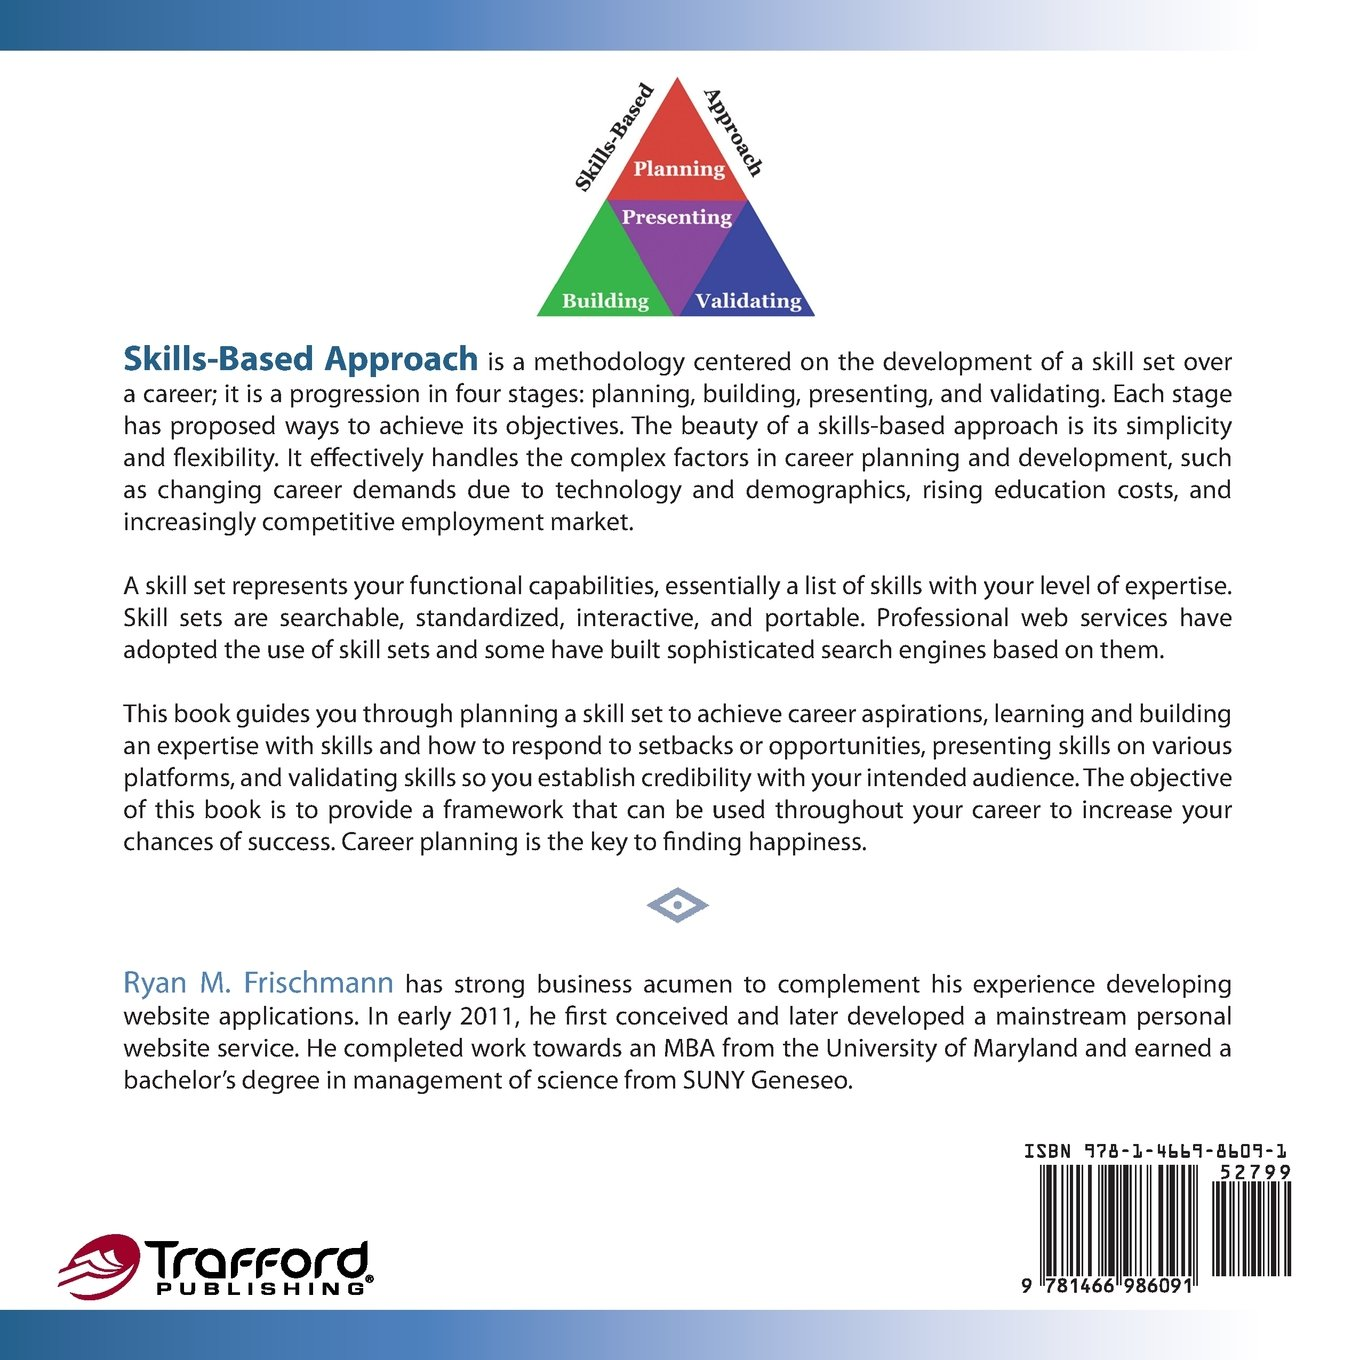 a skills based approach to developing a career ryan m frischmann a skills based approach to developing a career ryan m frischmann 9781466986091 com books